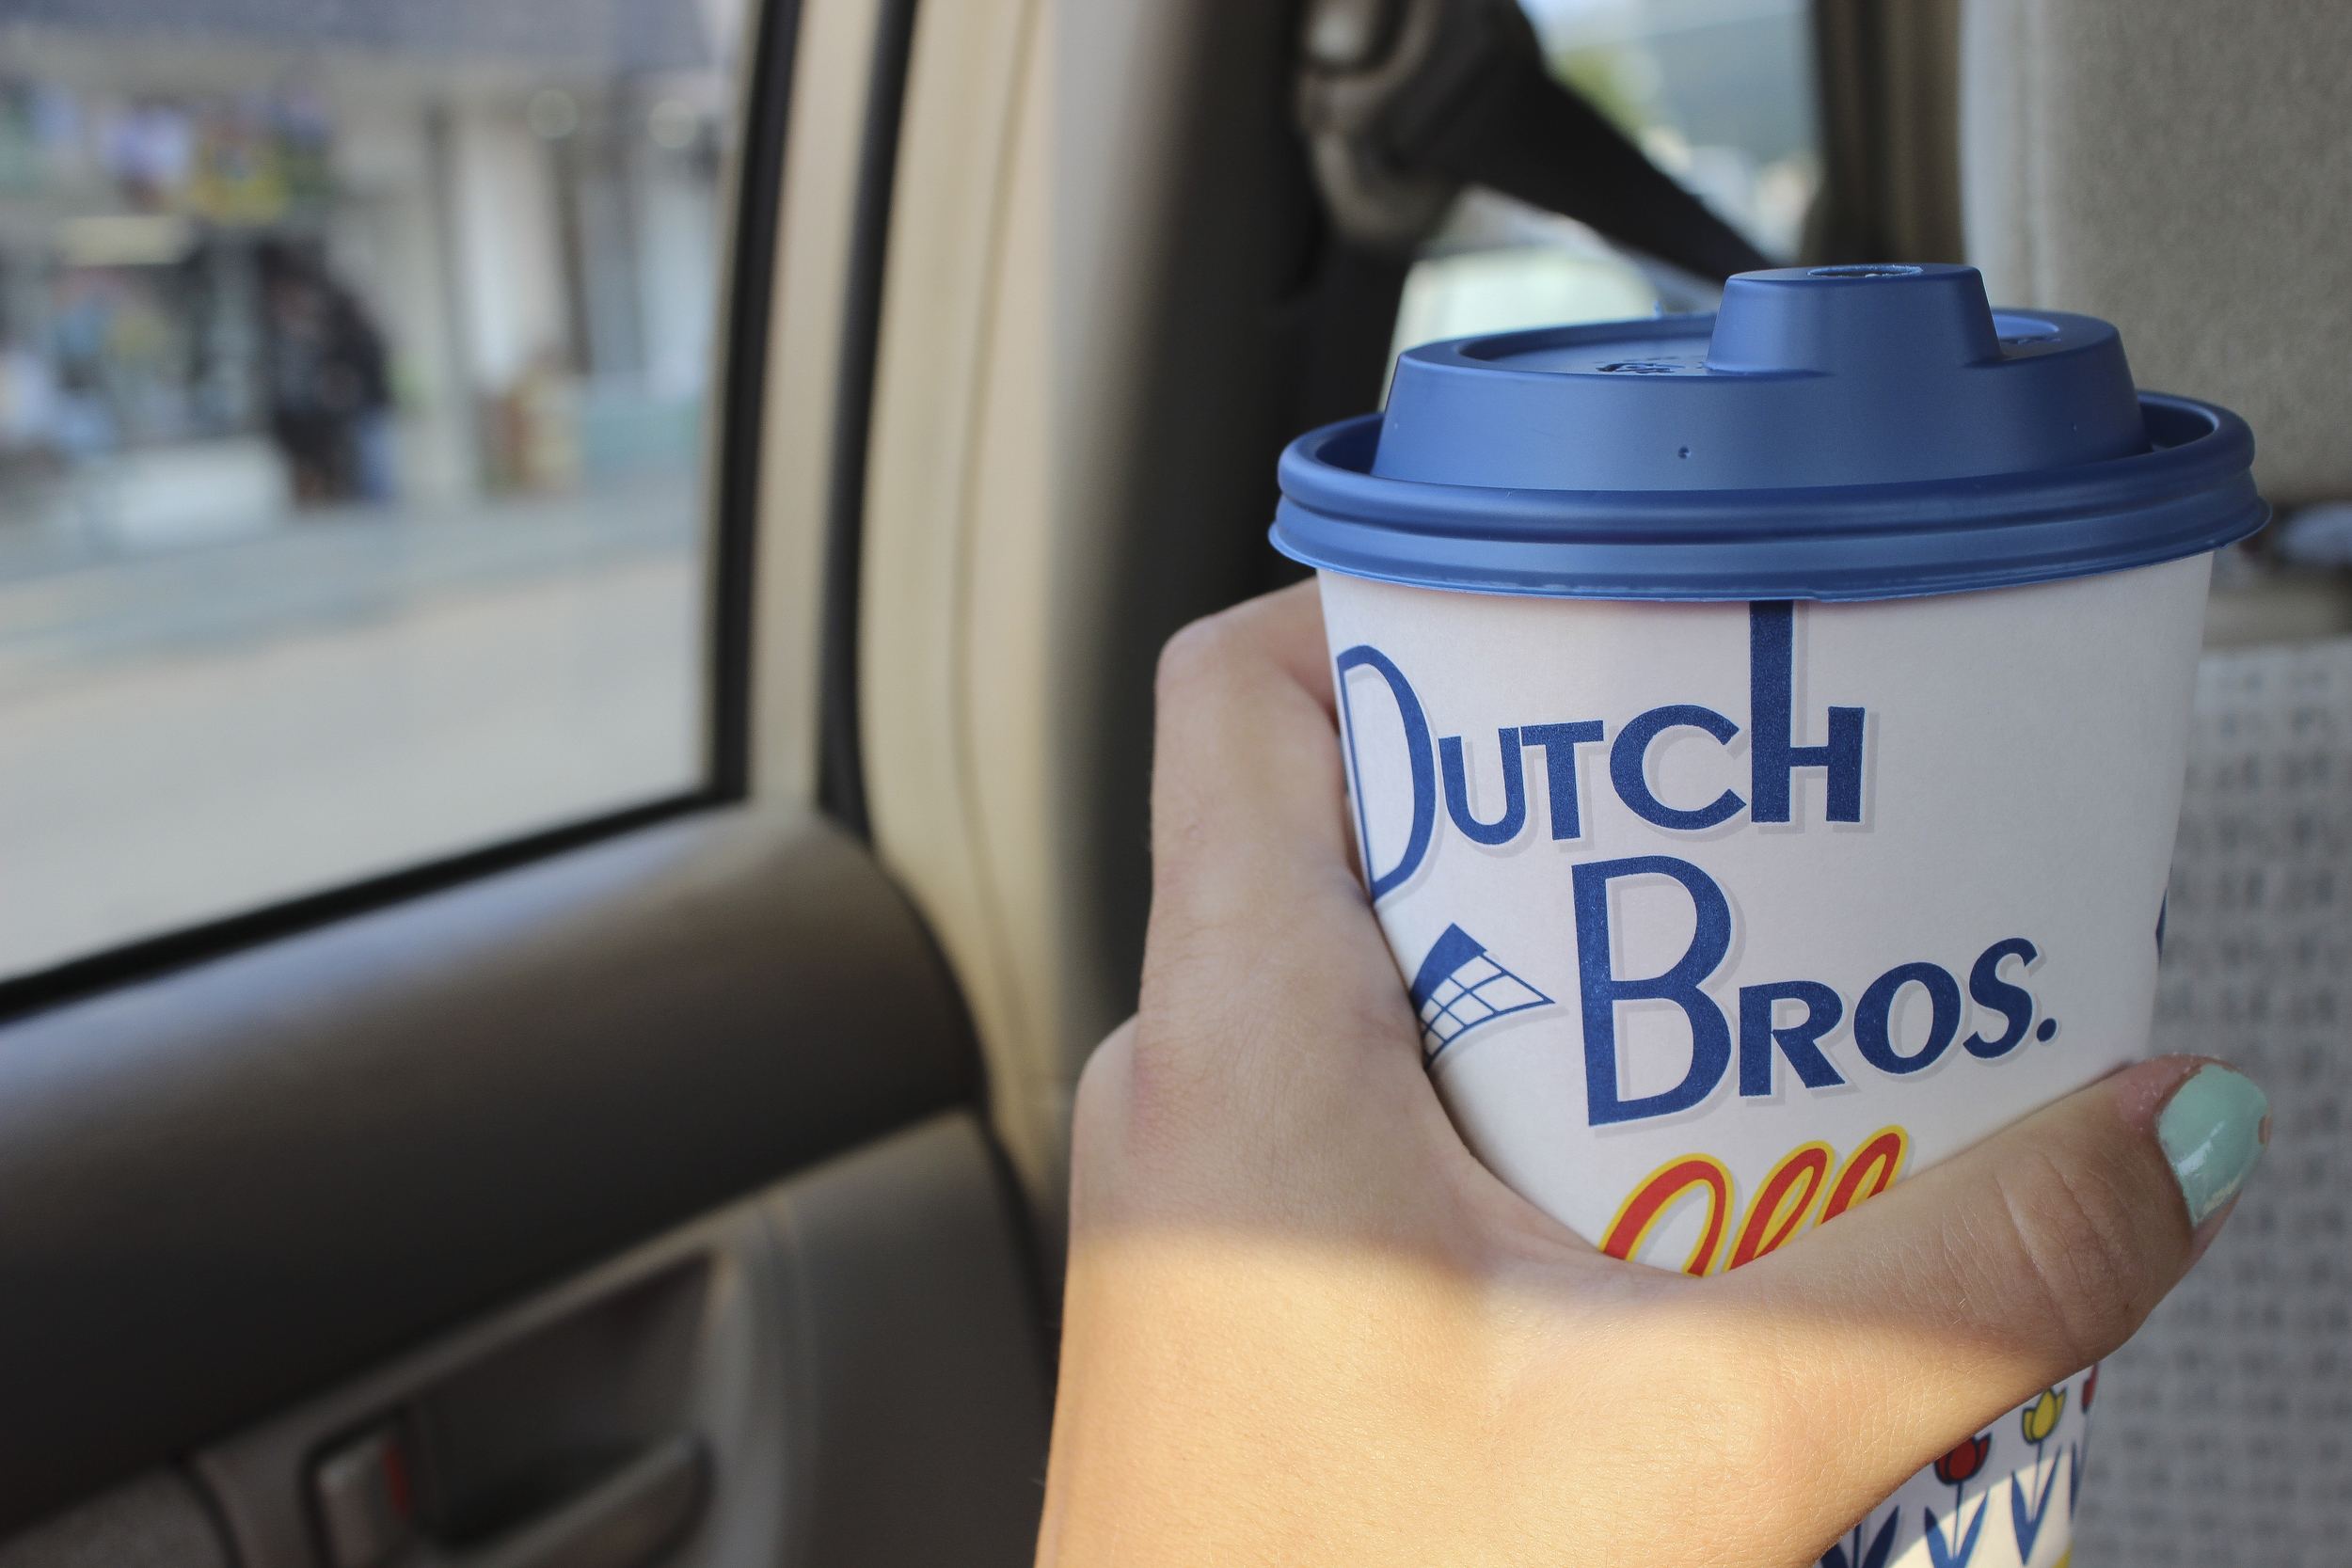 And what better to warm up other than hot chocolate from Dutch Bros.